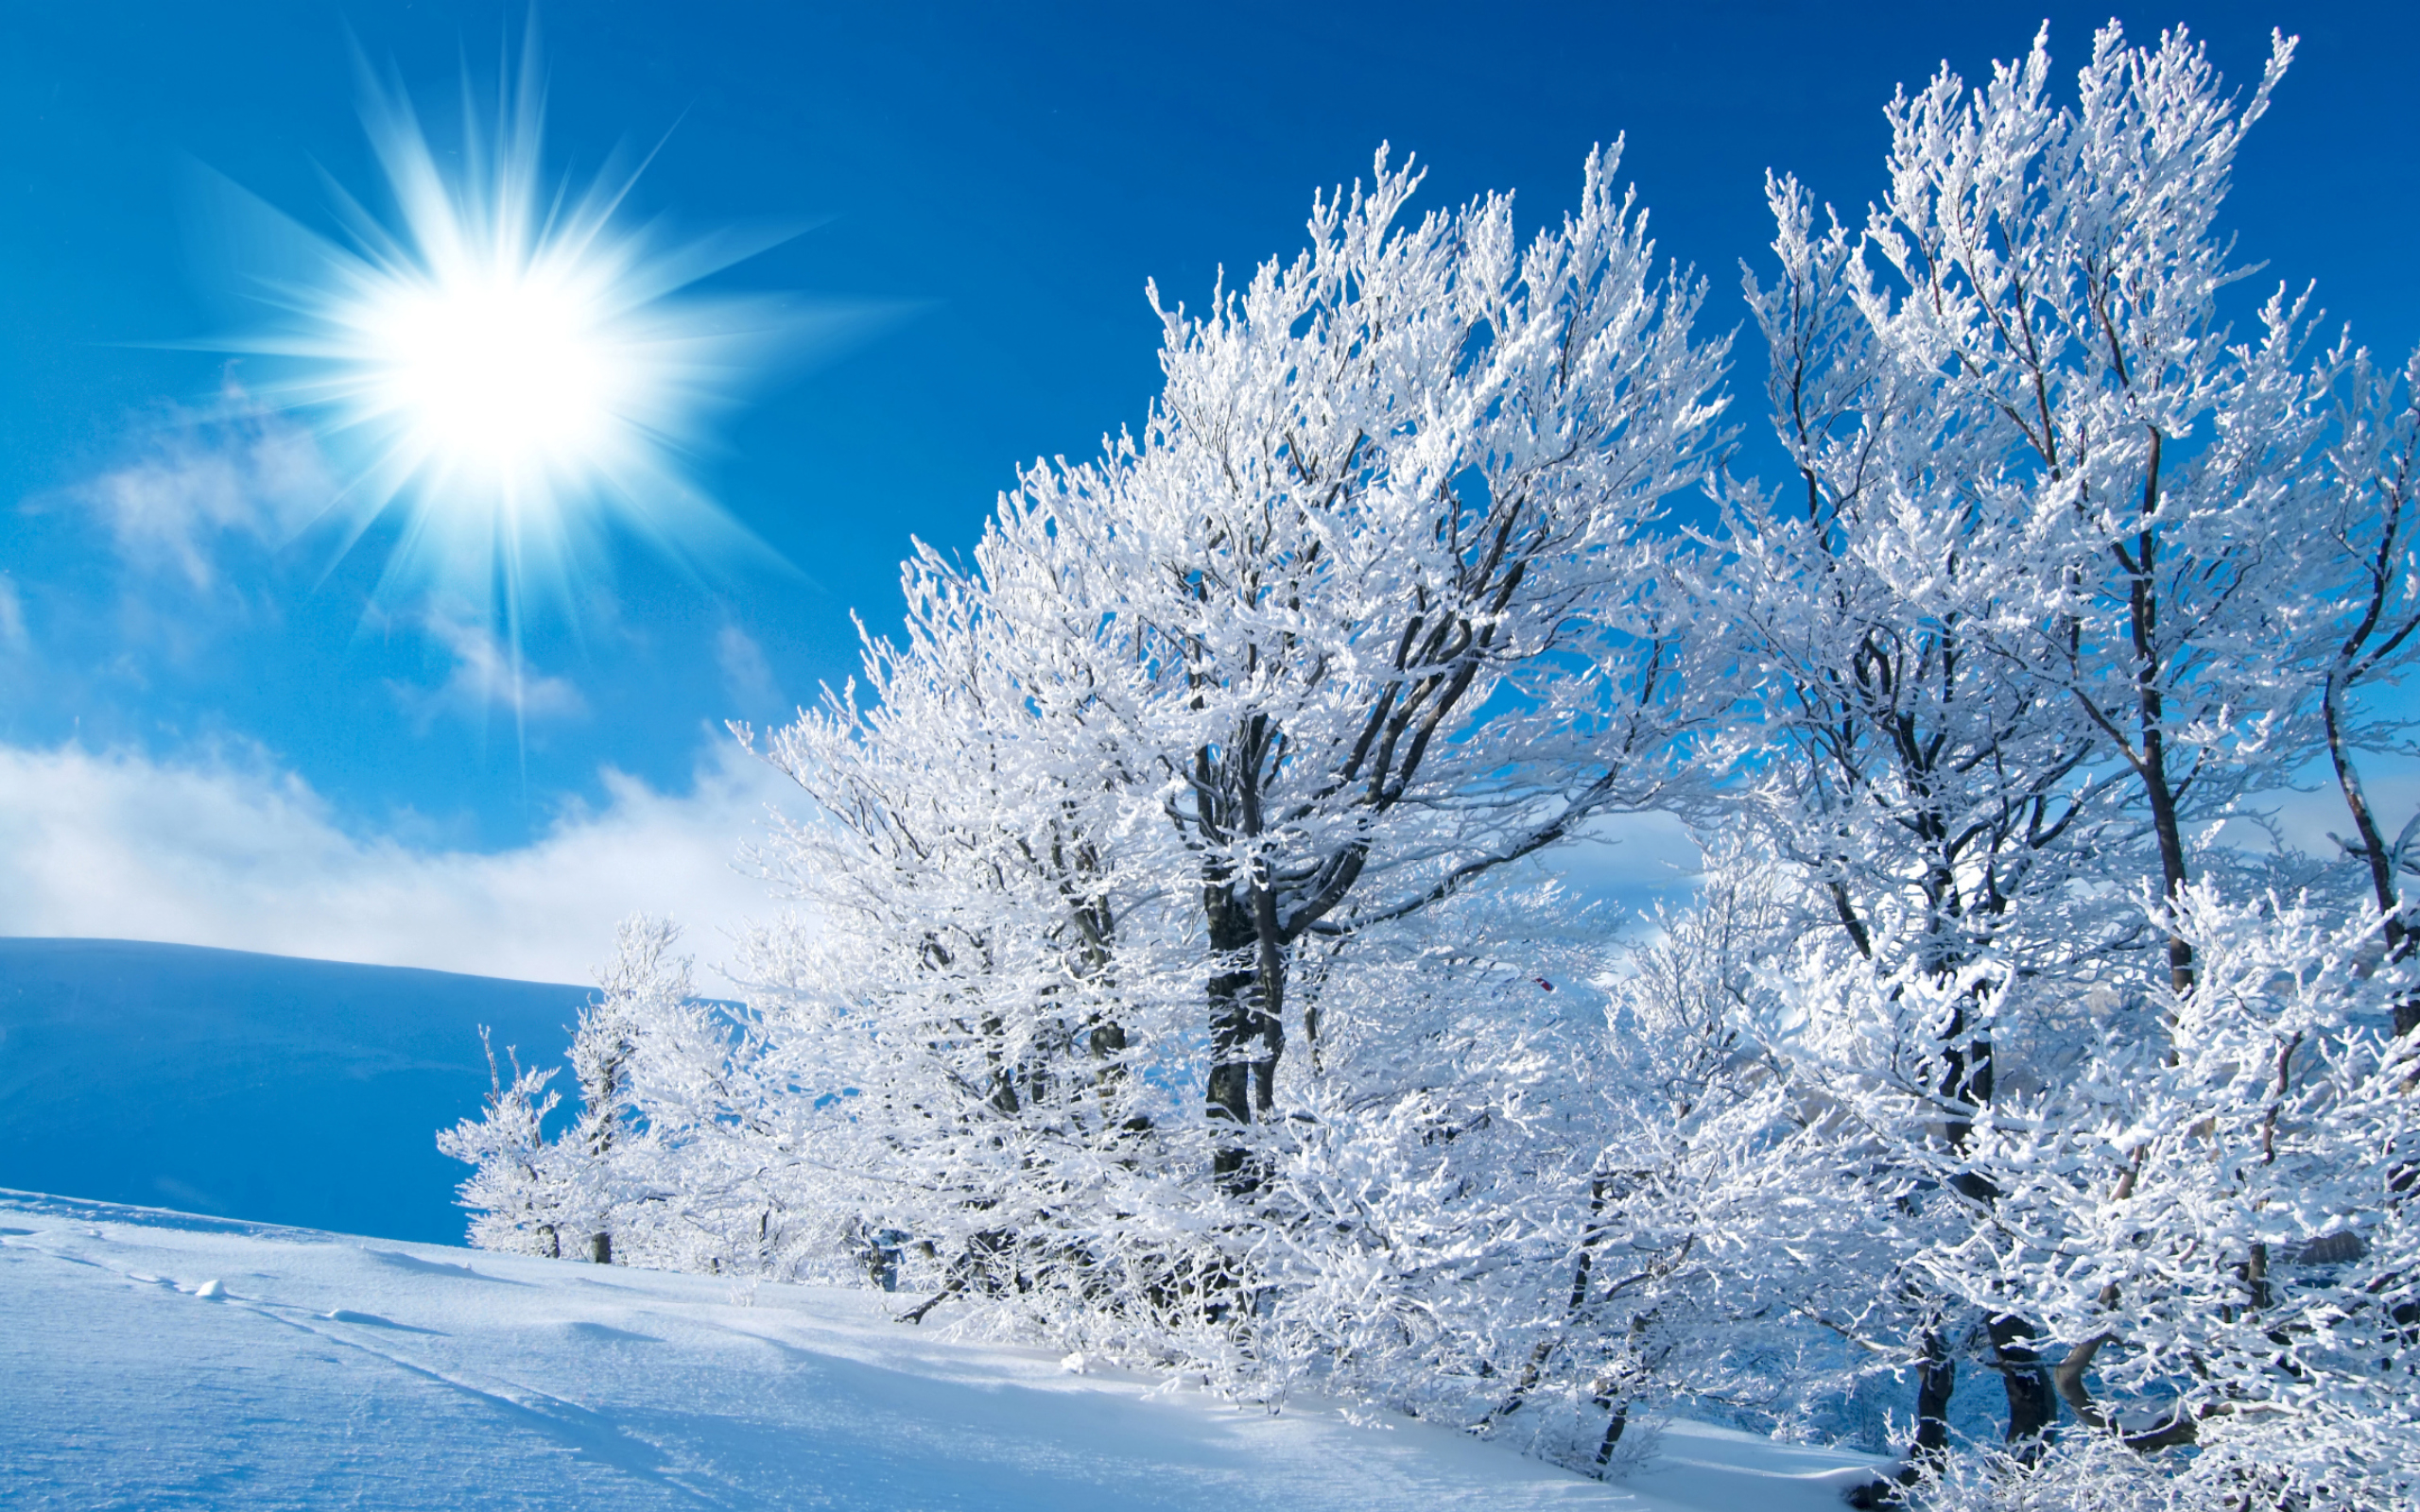 Winter Sun   Wallpaper High Definition High Quality 2560x1600